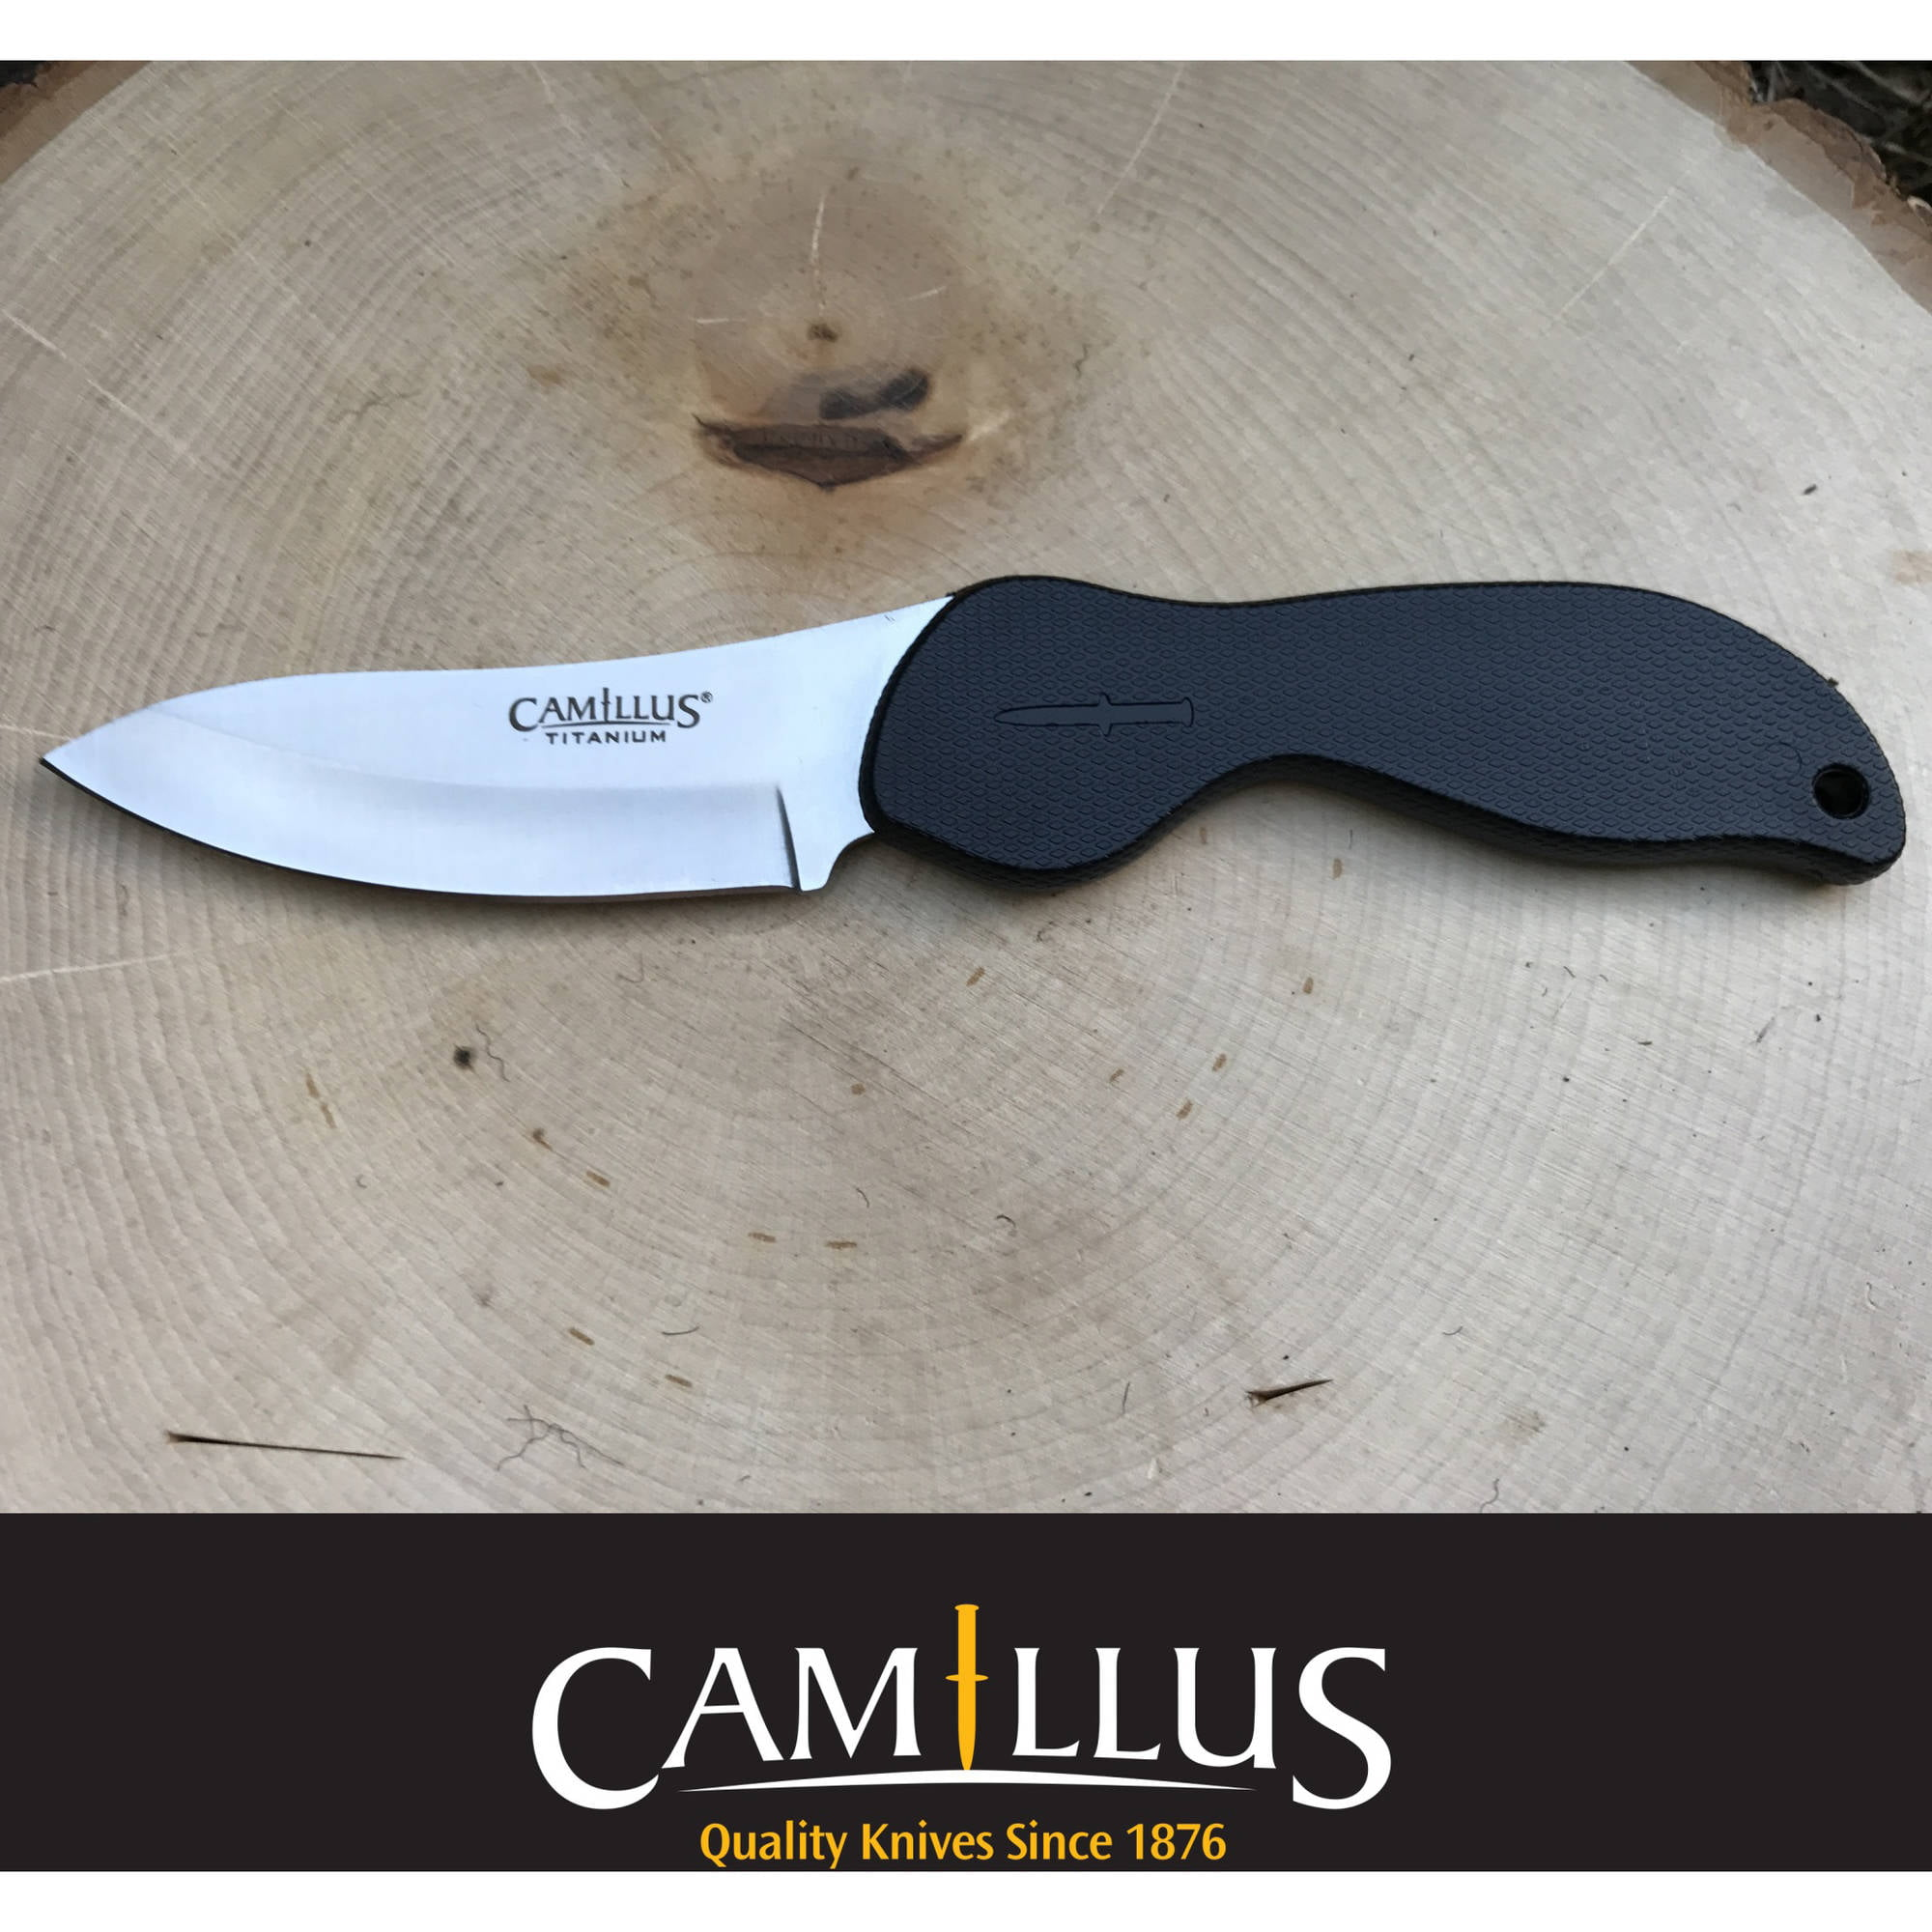 Camillus Game Skinner Knife, #19354 by Acme United Asia Pacific Limited